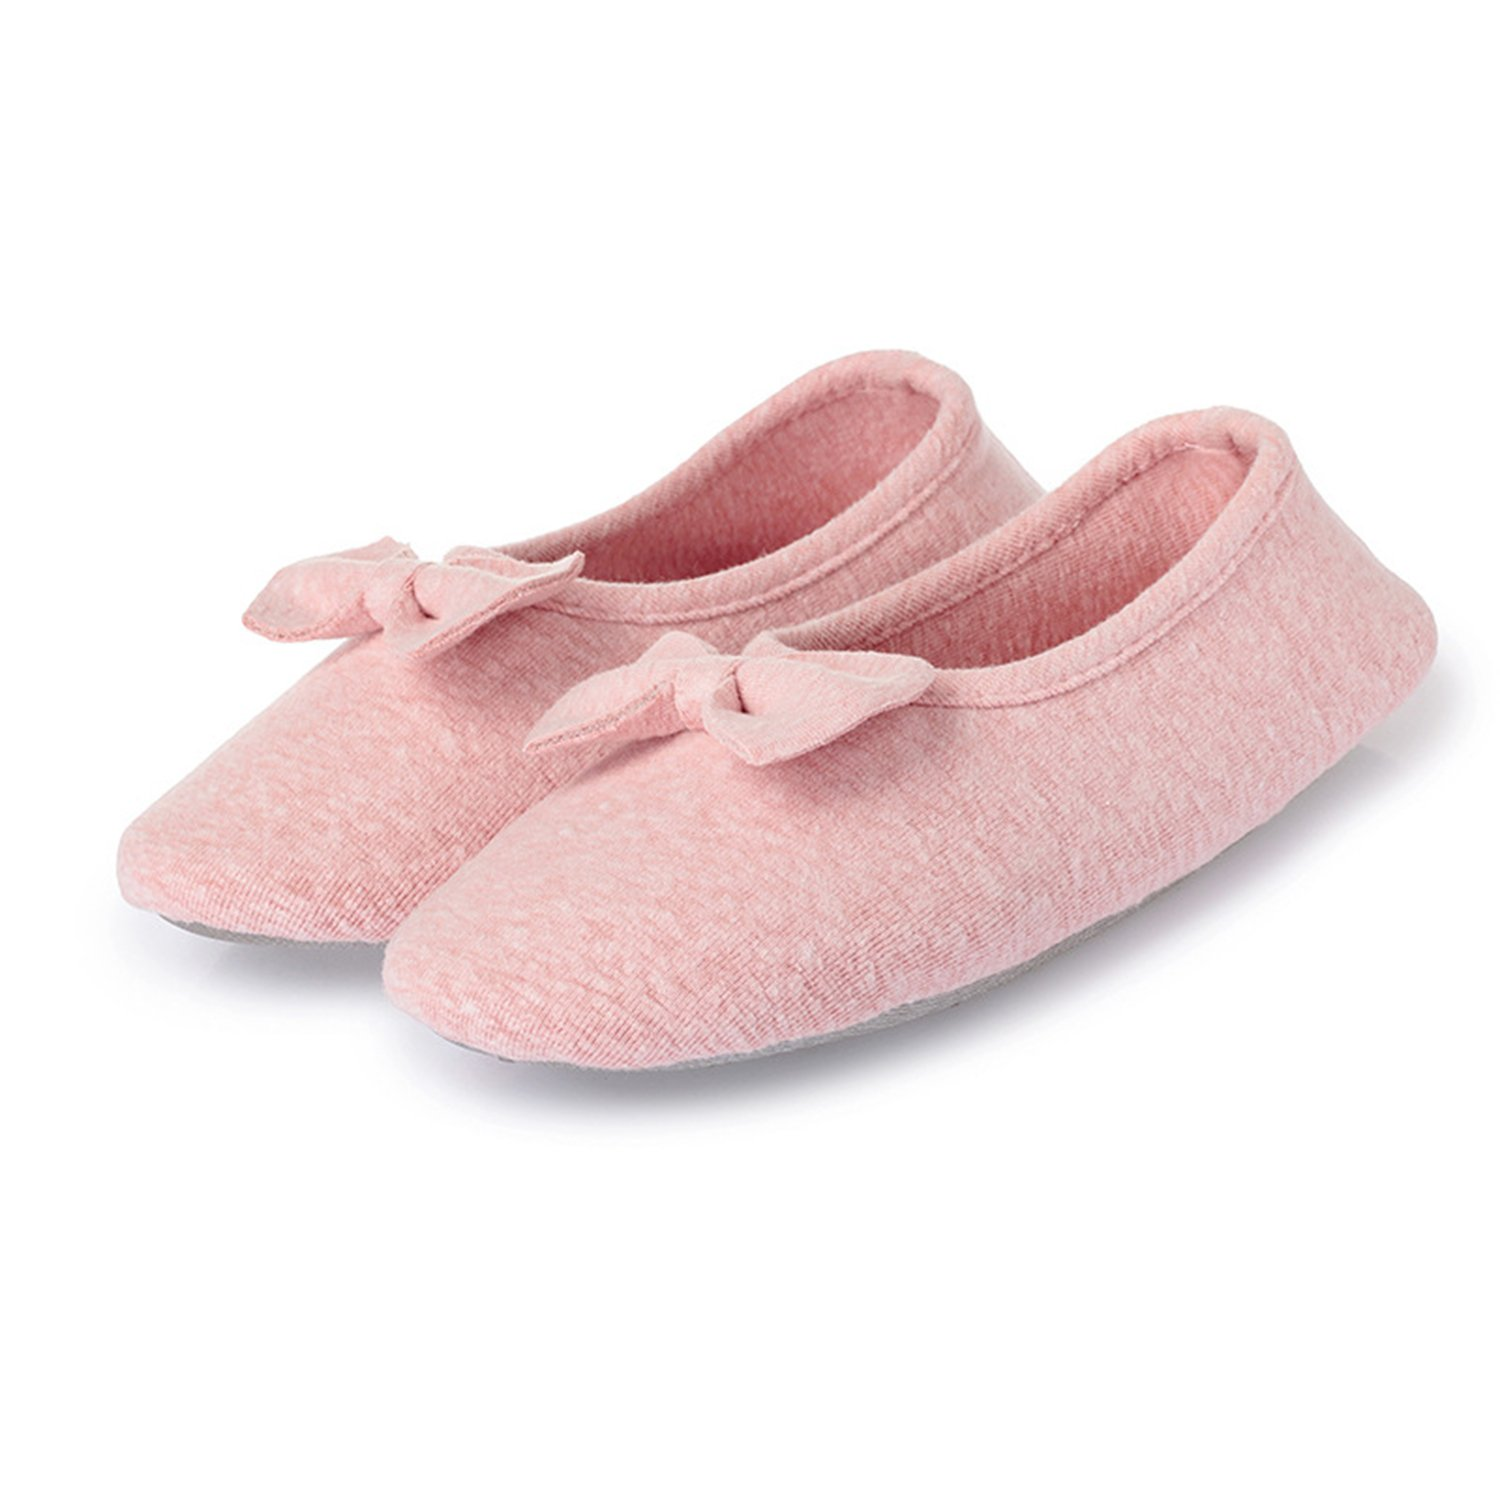 L-RUN Women's Ballerina Style Slippers Anti-Skid House Indoor Shoes Washable (L(W:8.5-9), Pink Bowknot)